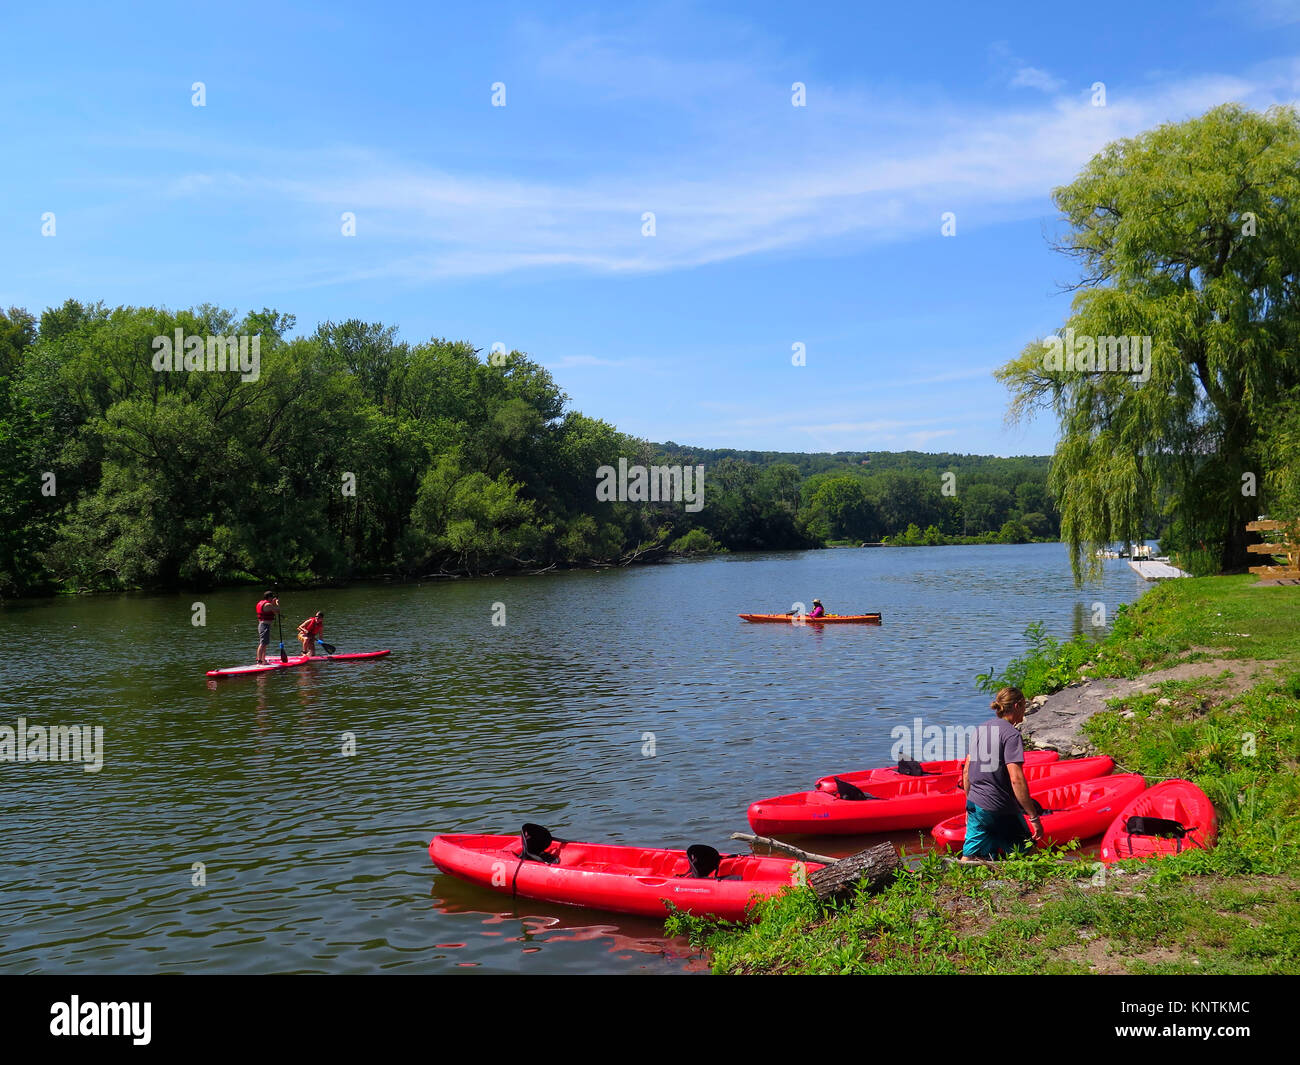 Ithaca, Steward Park, New York state, USA - Stock Image